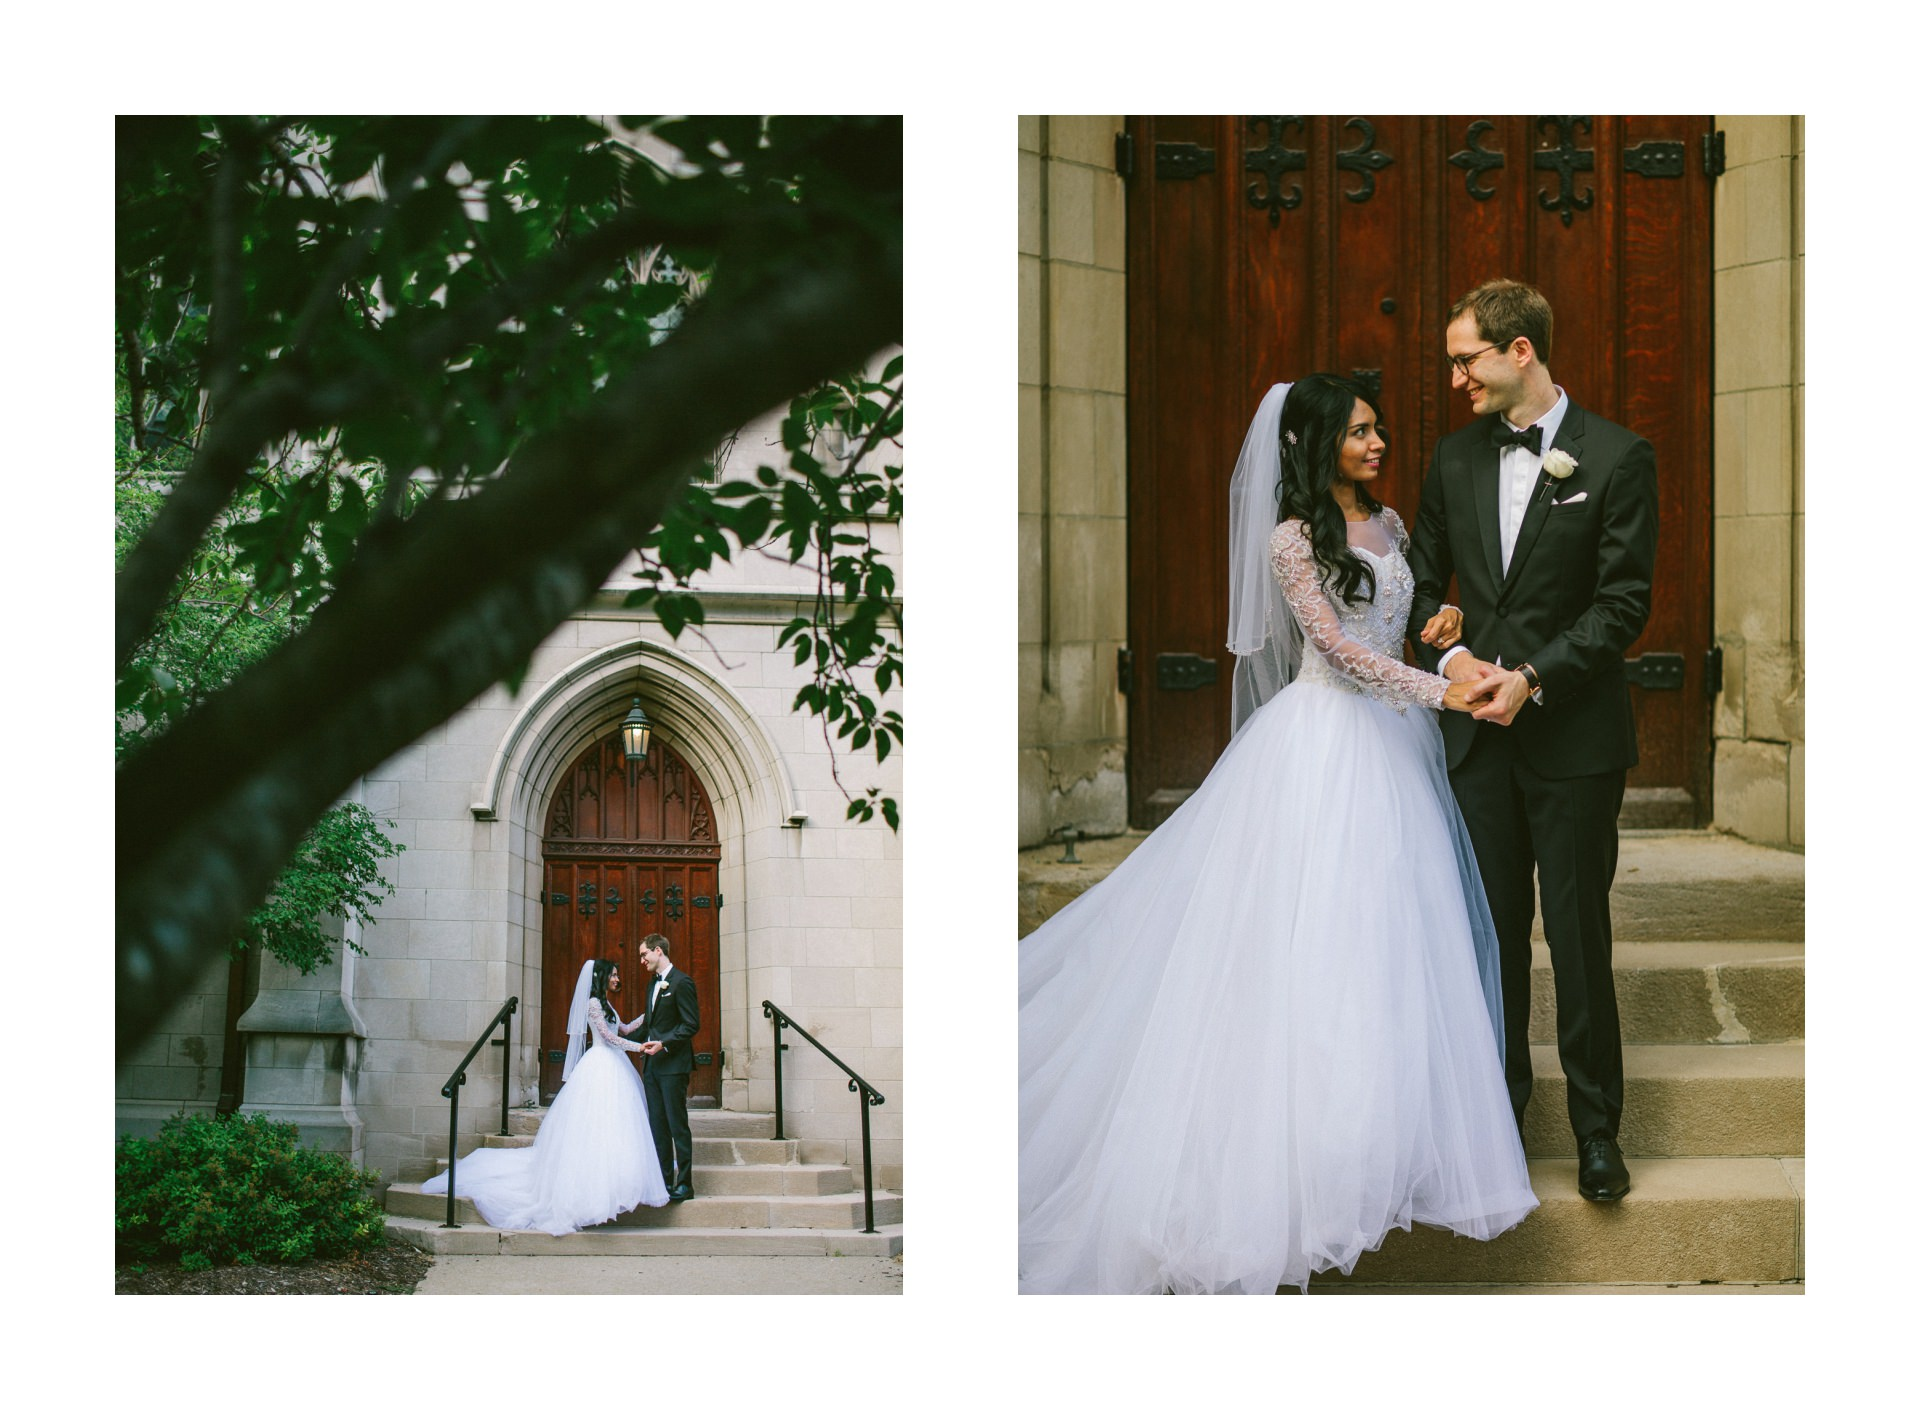 Severance Hall Wedding Photographer in Cleveland 37.jpg